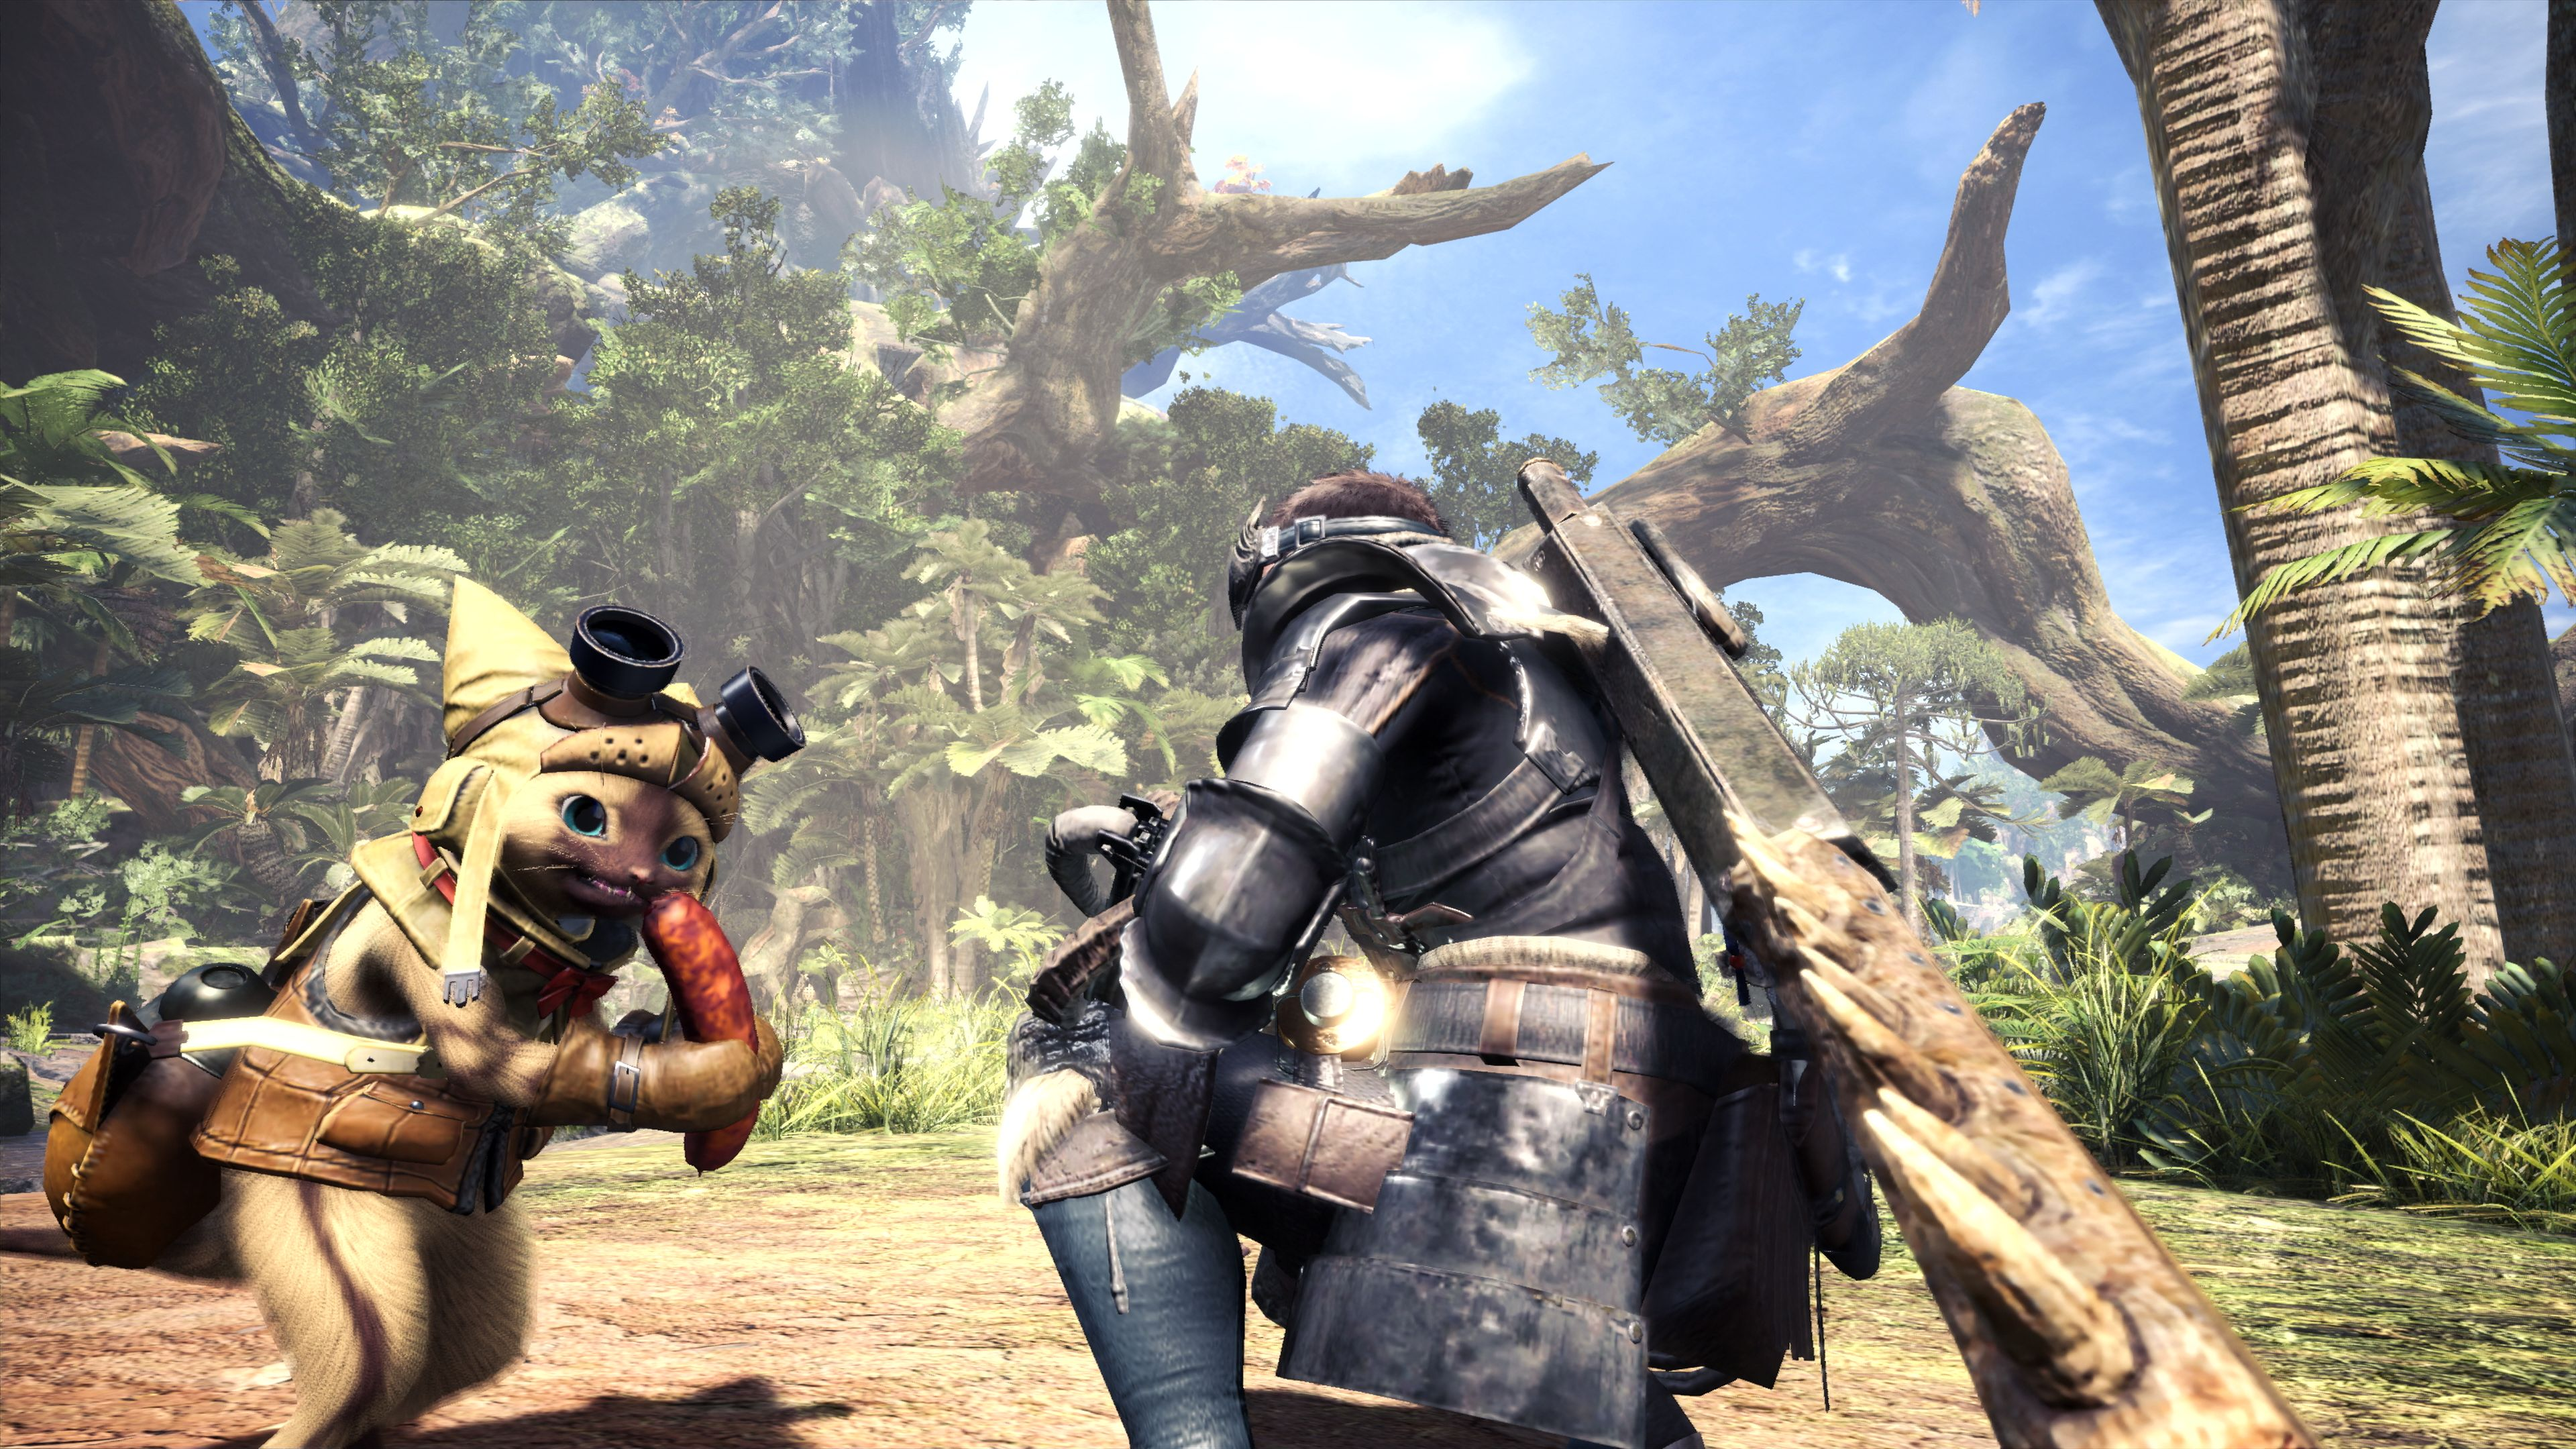 monster-hunter-world-wildspire-waste-screenshot